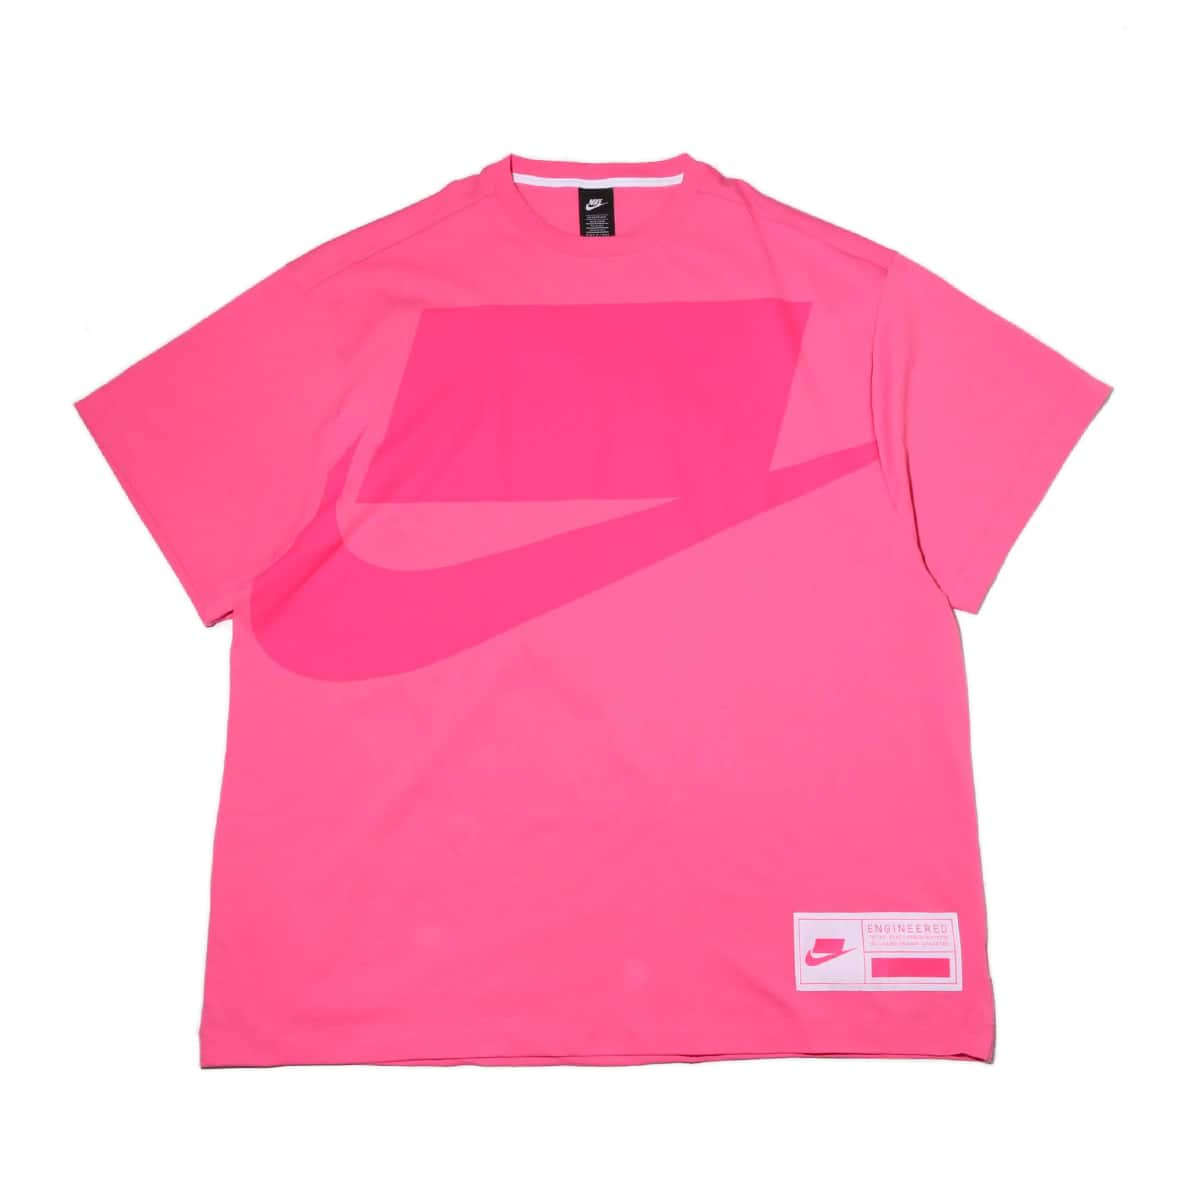 NIKE AS W NSW NSW DRESS SS OVERSIZE PINKSICLE/WHITE/HYPER PINK 20SP-S_photo_large